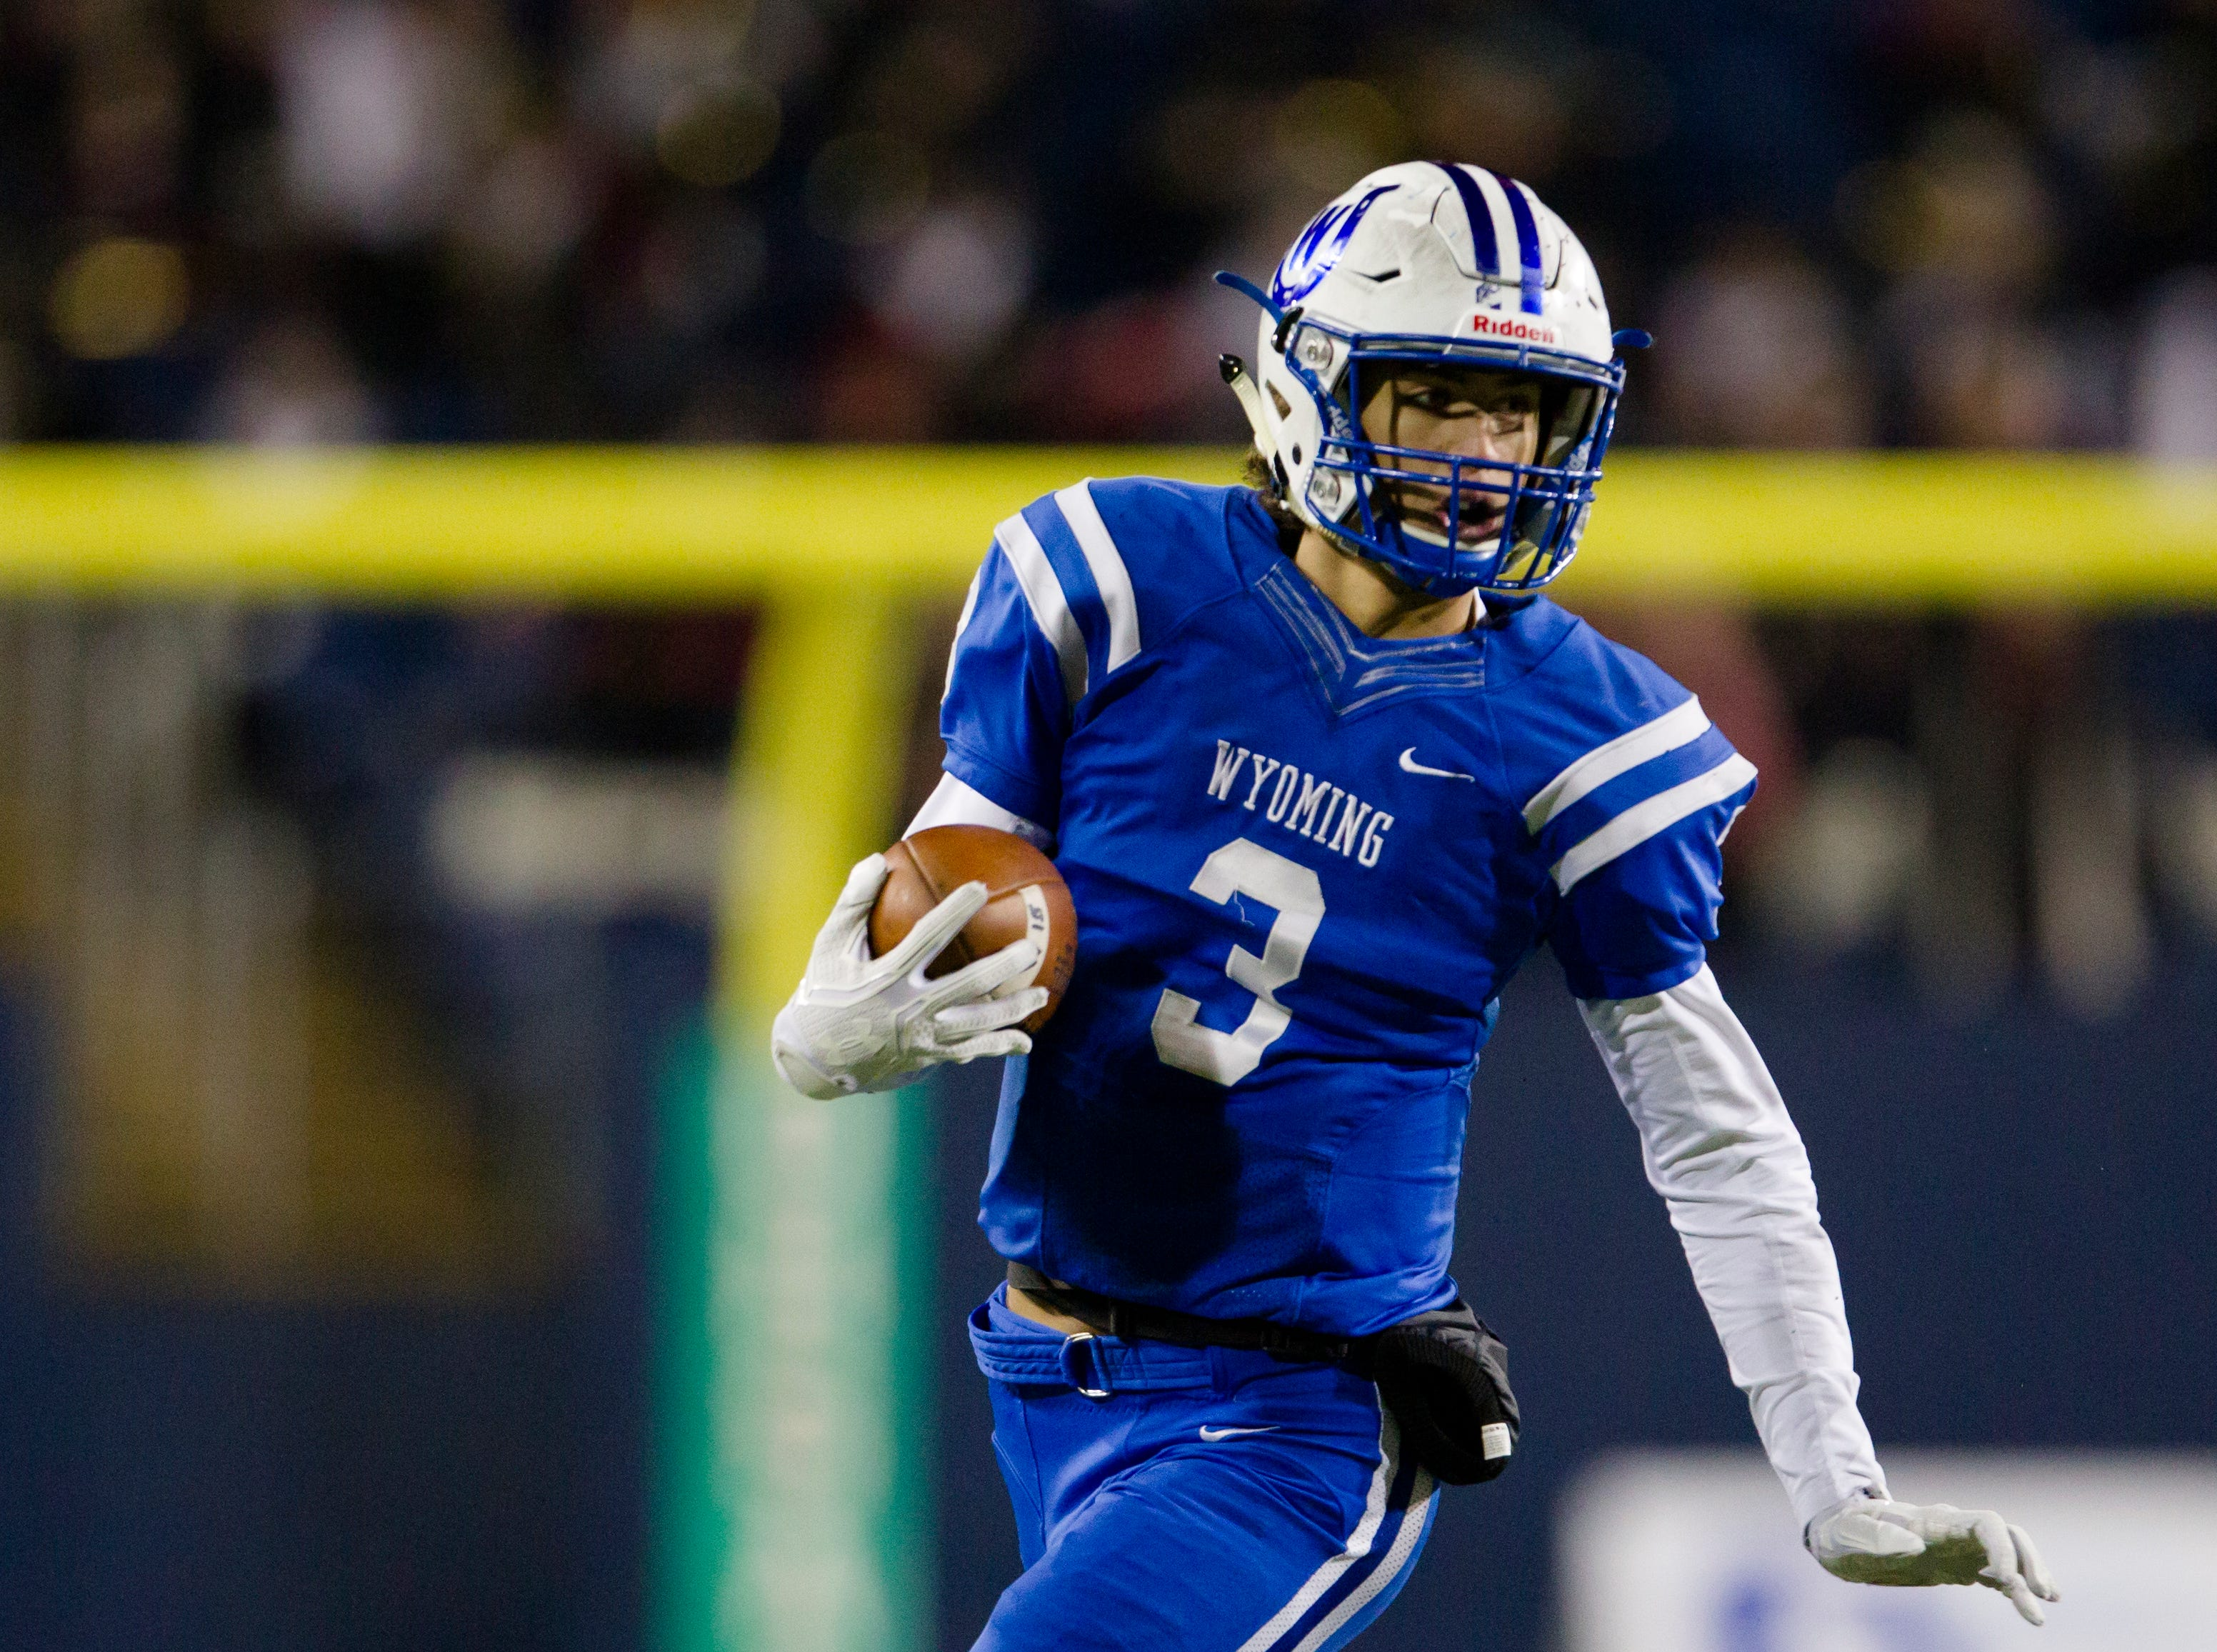 Wyoming's Evan Prater (3) runs downfield during the first half of the OHSAA Division IV State Championship football game between Wyoming and Girard on Saturday, Dec. 1, 2018, at Tom Benson Stadium in Canton.